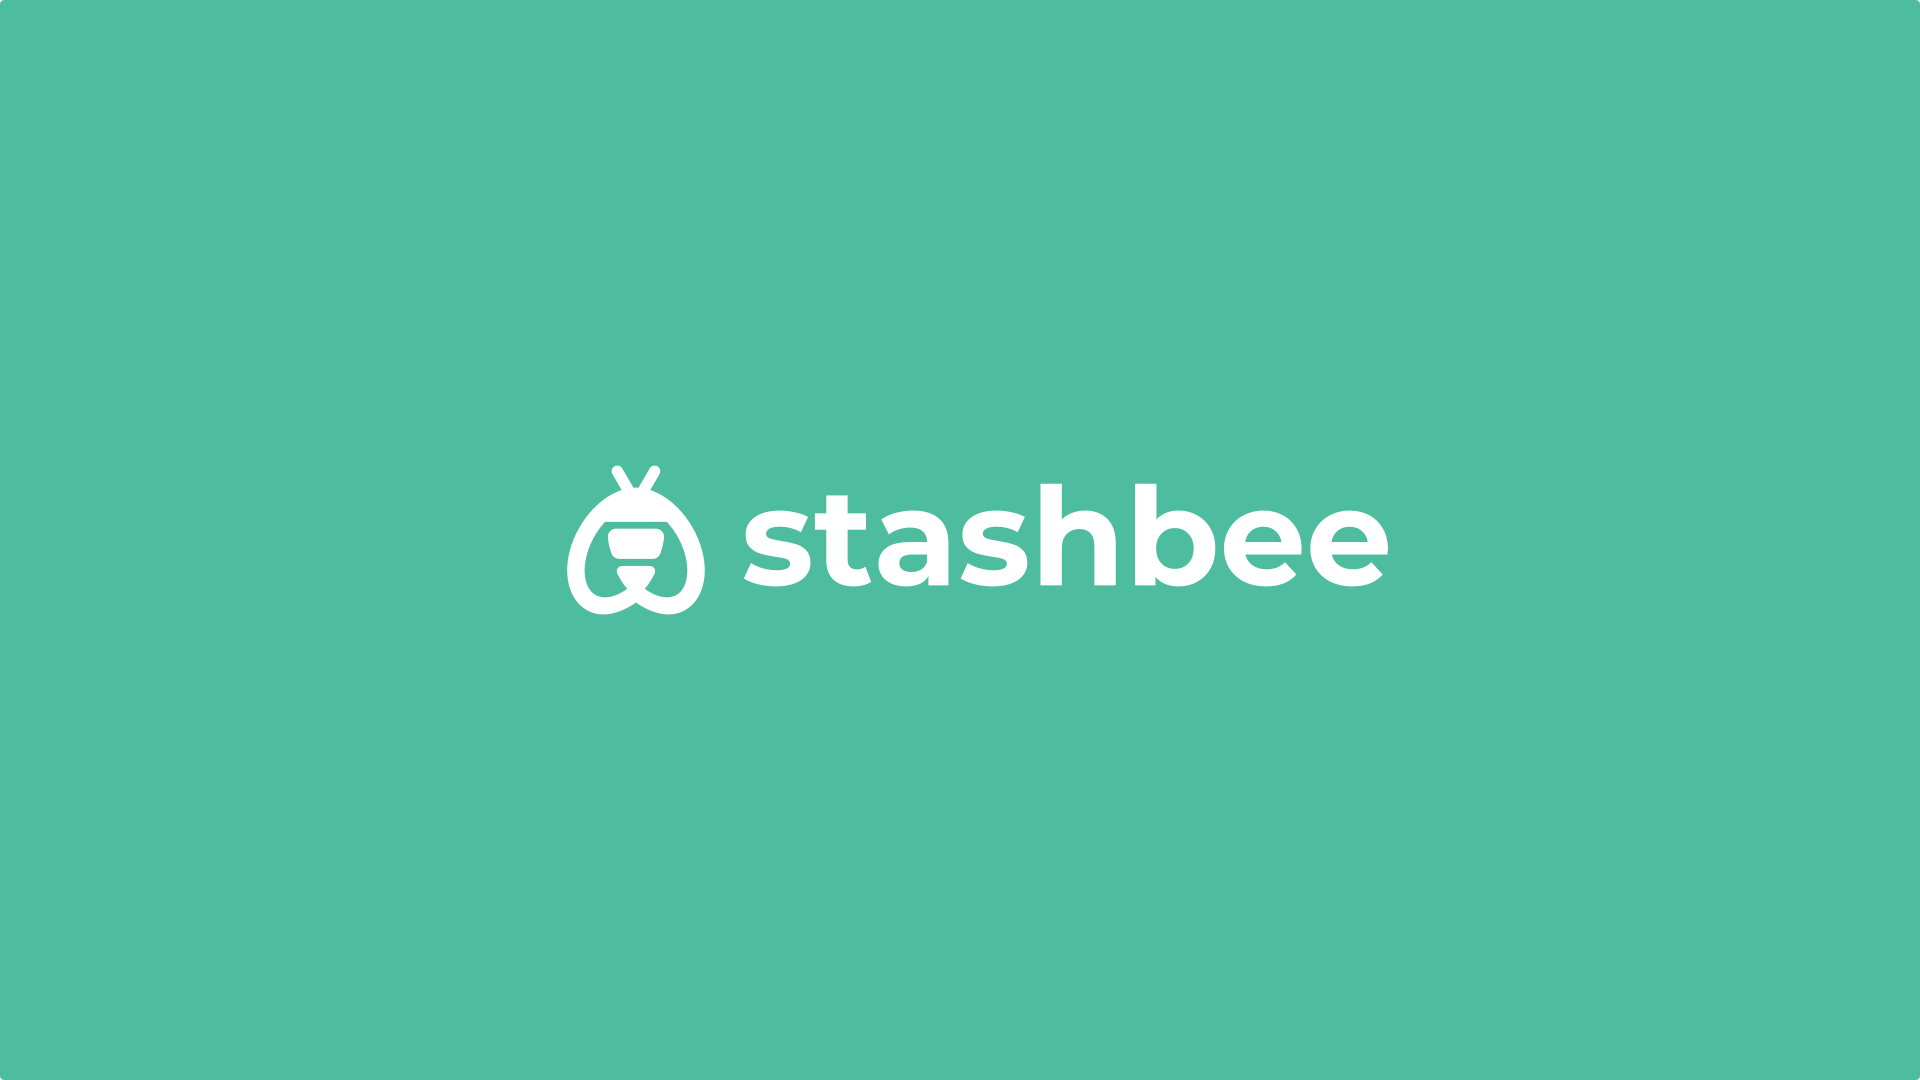 StashBee Referral Code